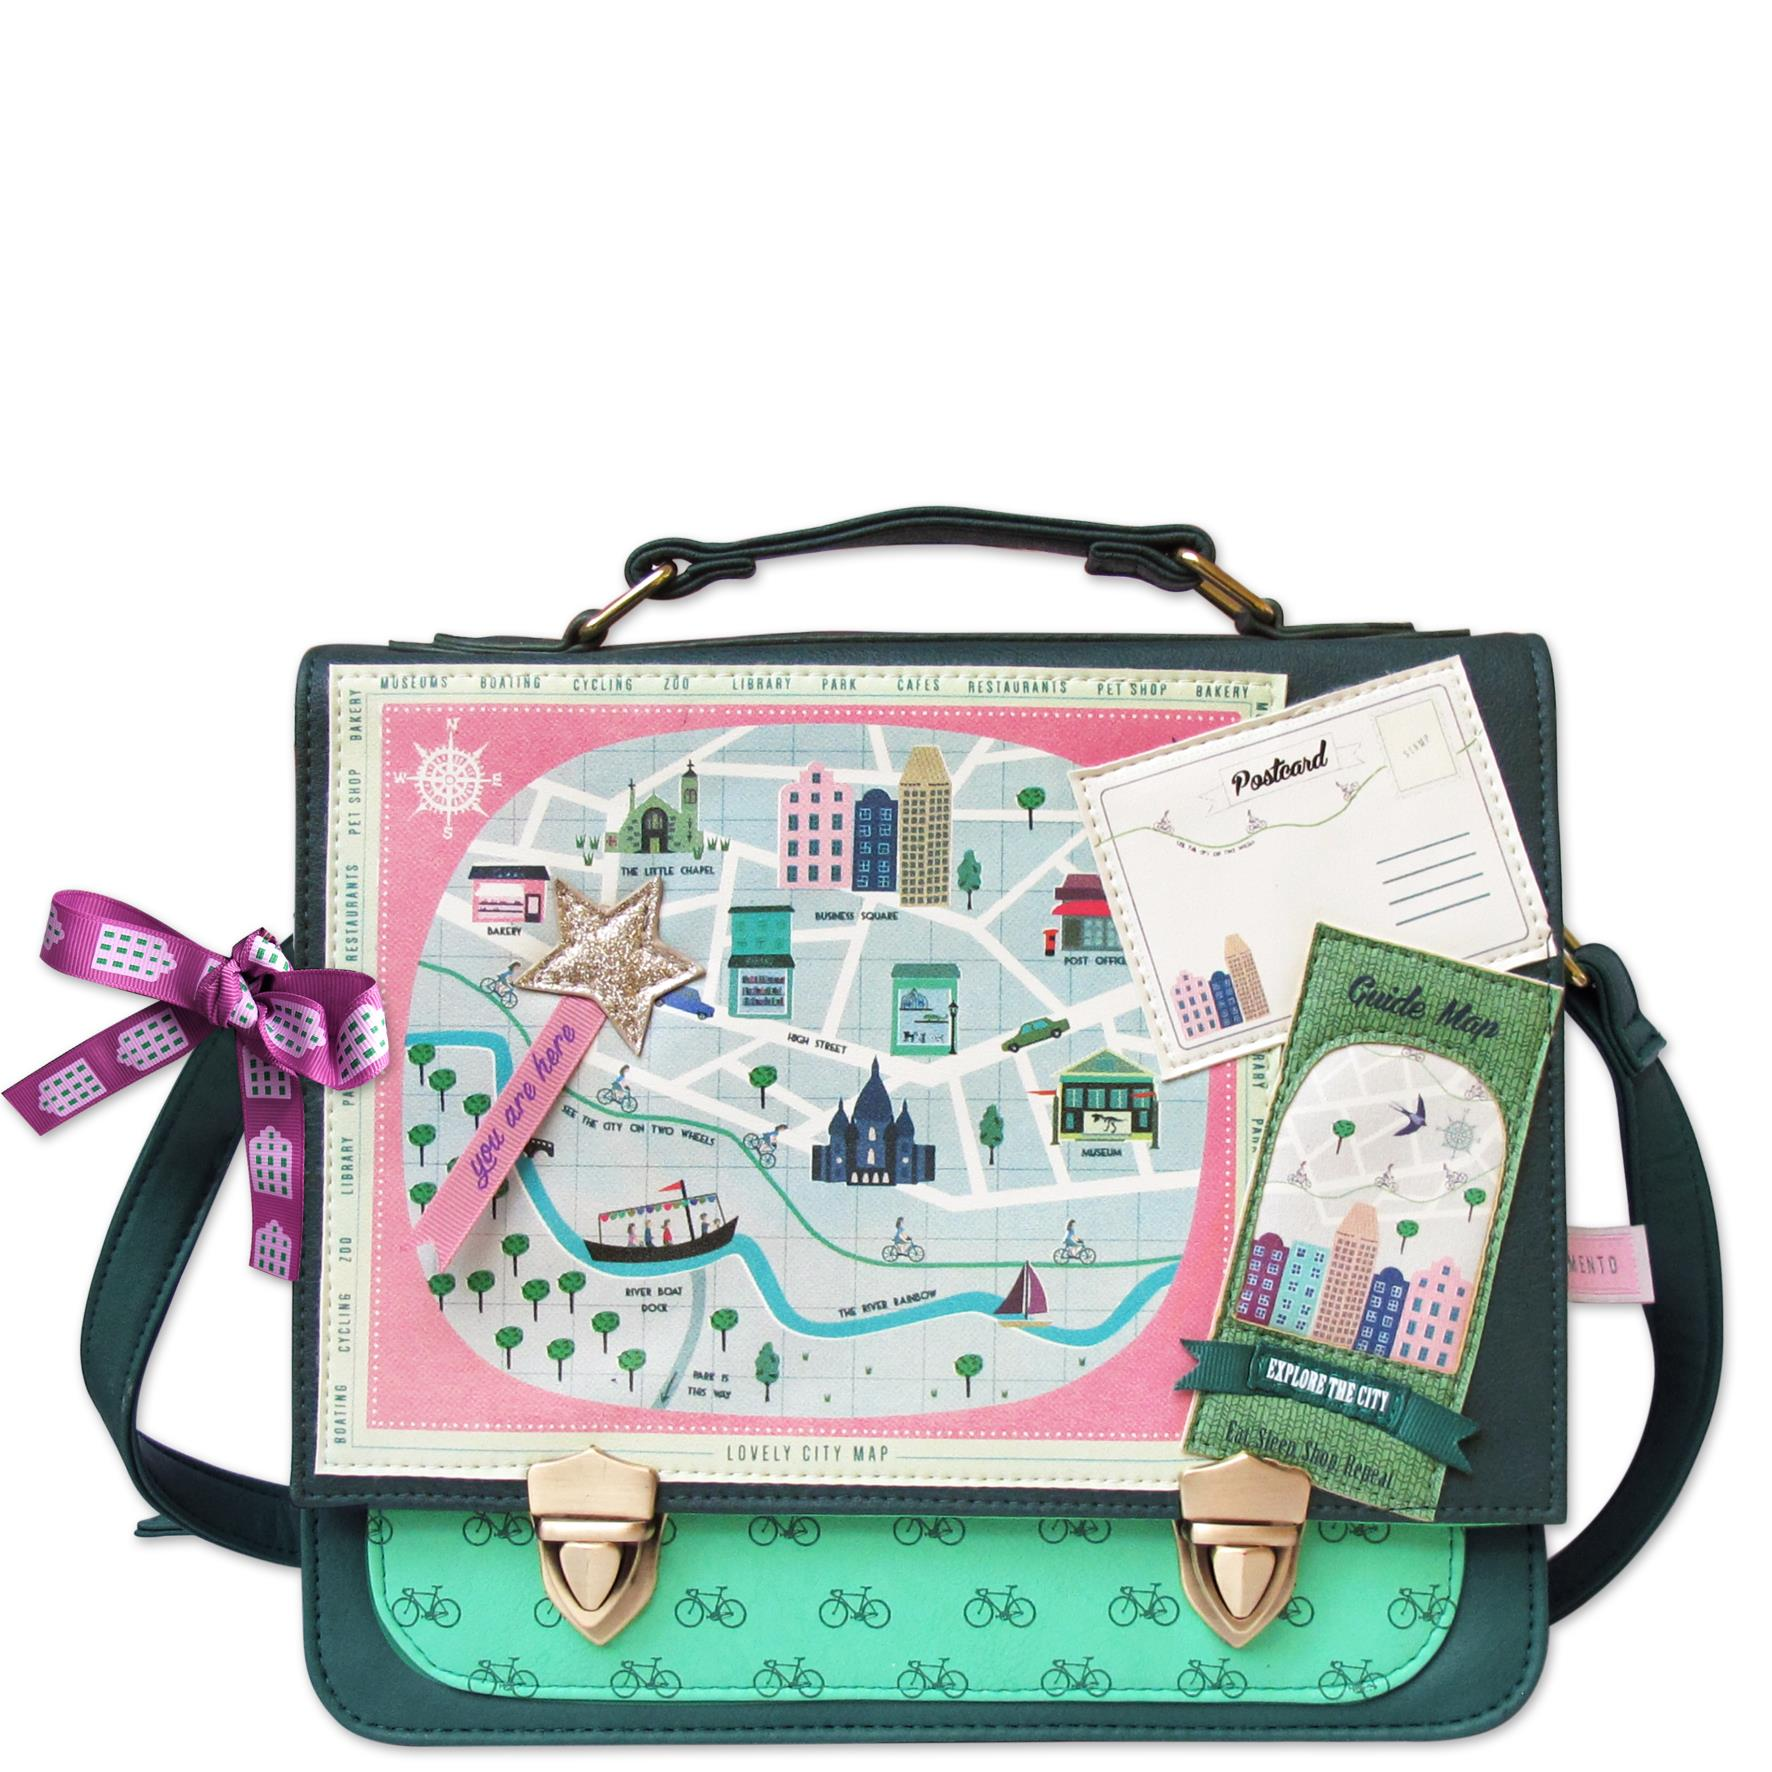 Disaster Designs zelená kabelka Memento City Satchel